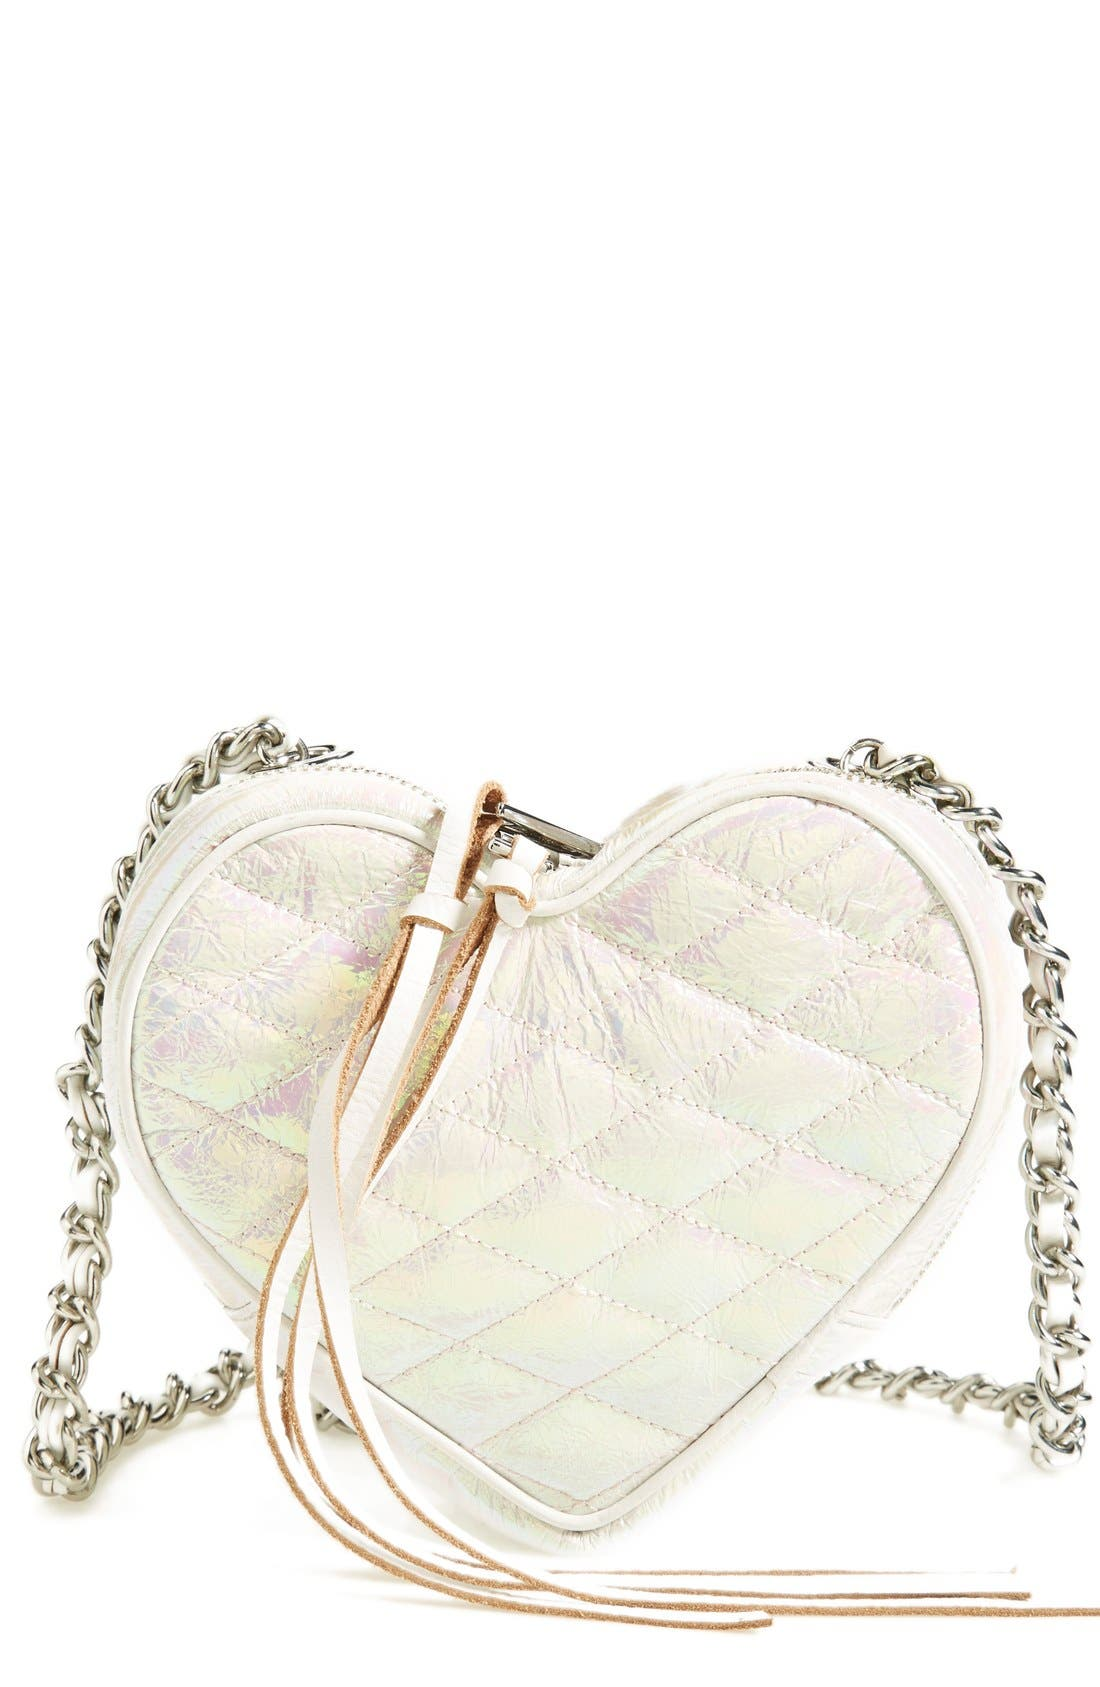 Heart Crossbody Bag,                             Main thumbnail 1, color,                             100